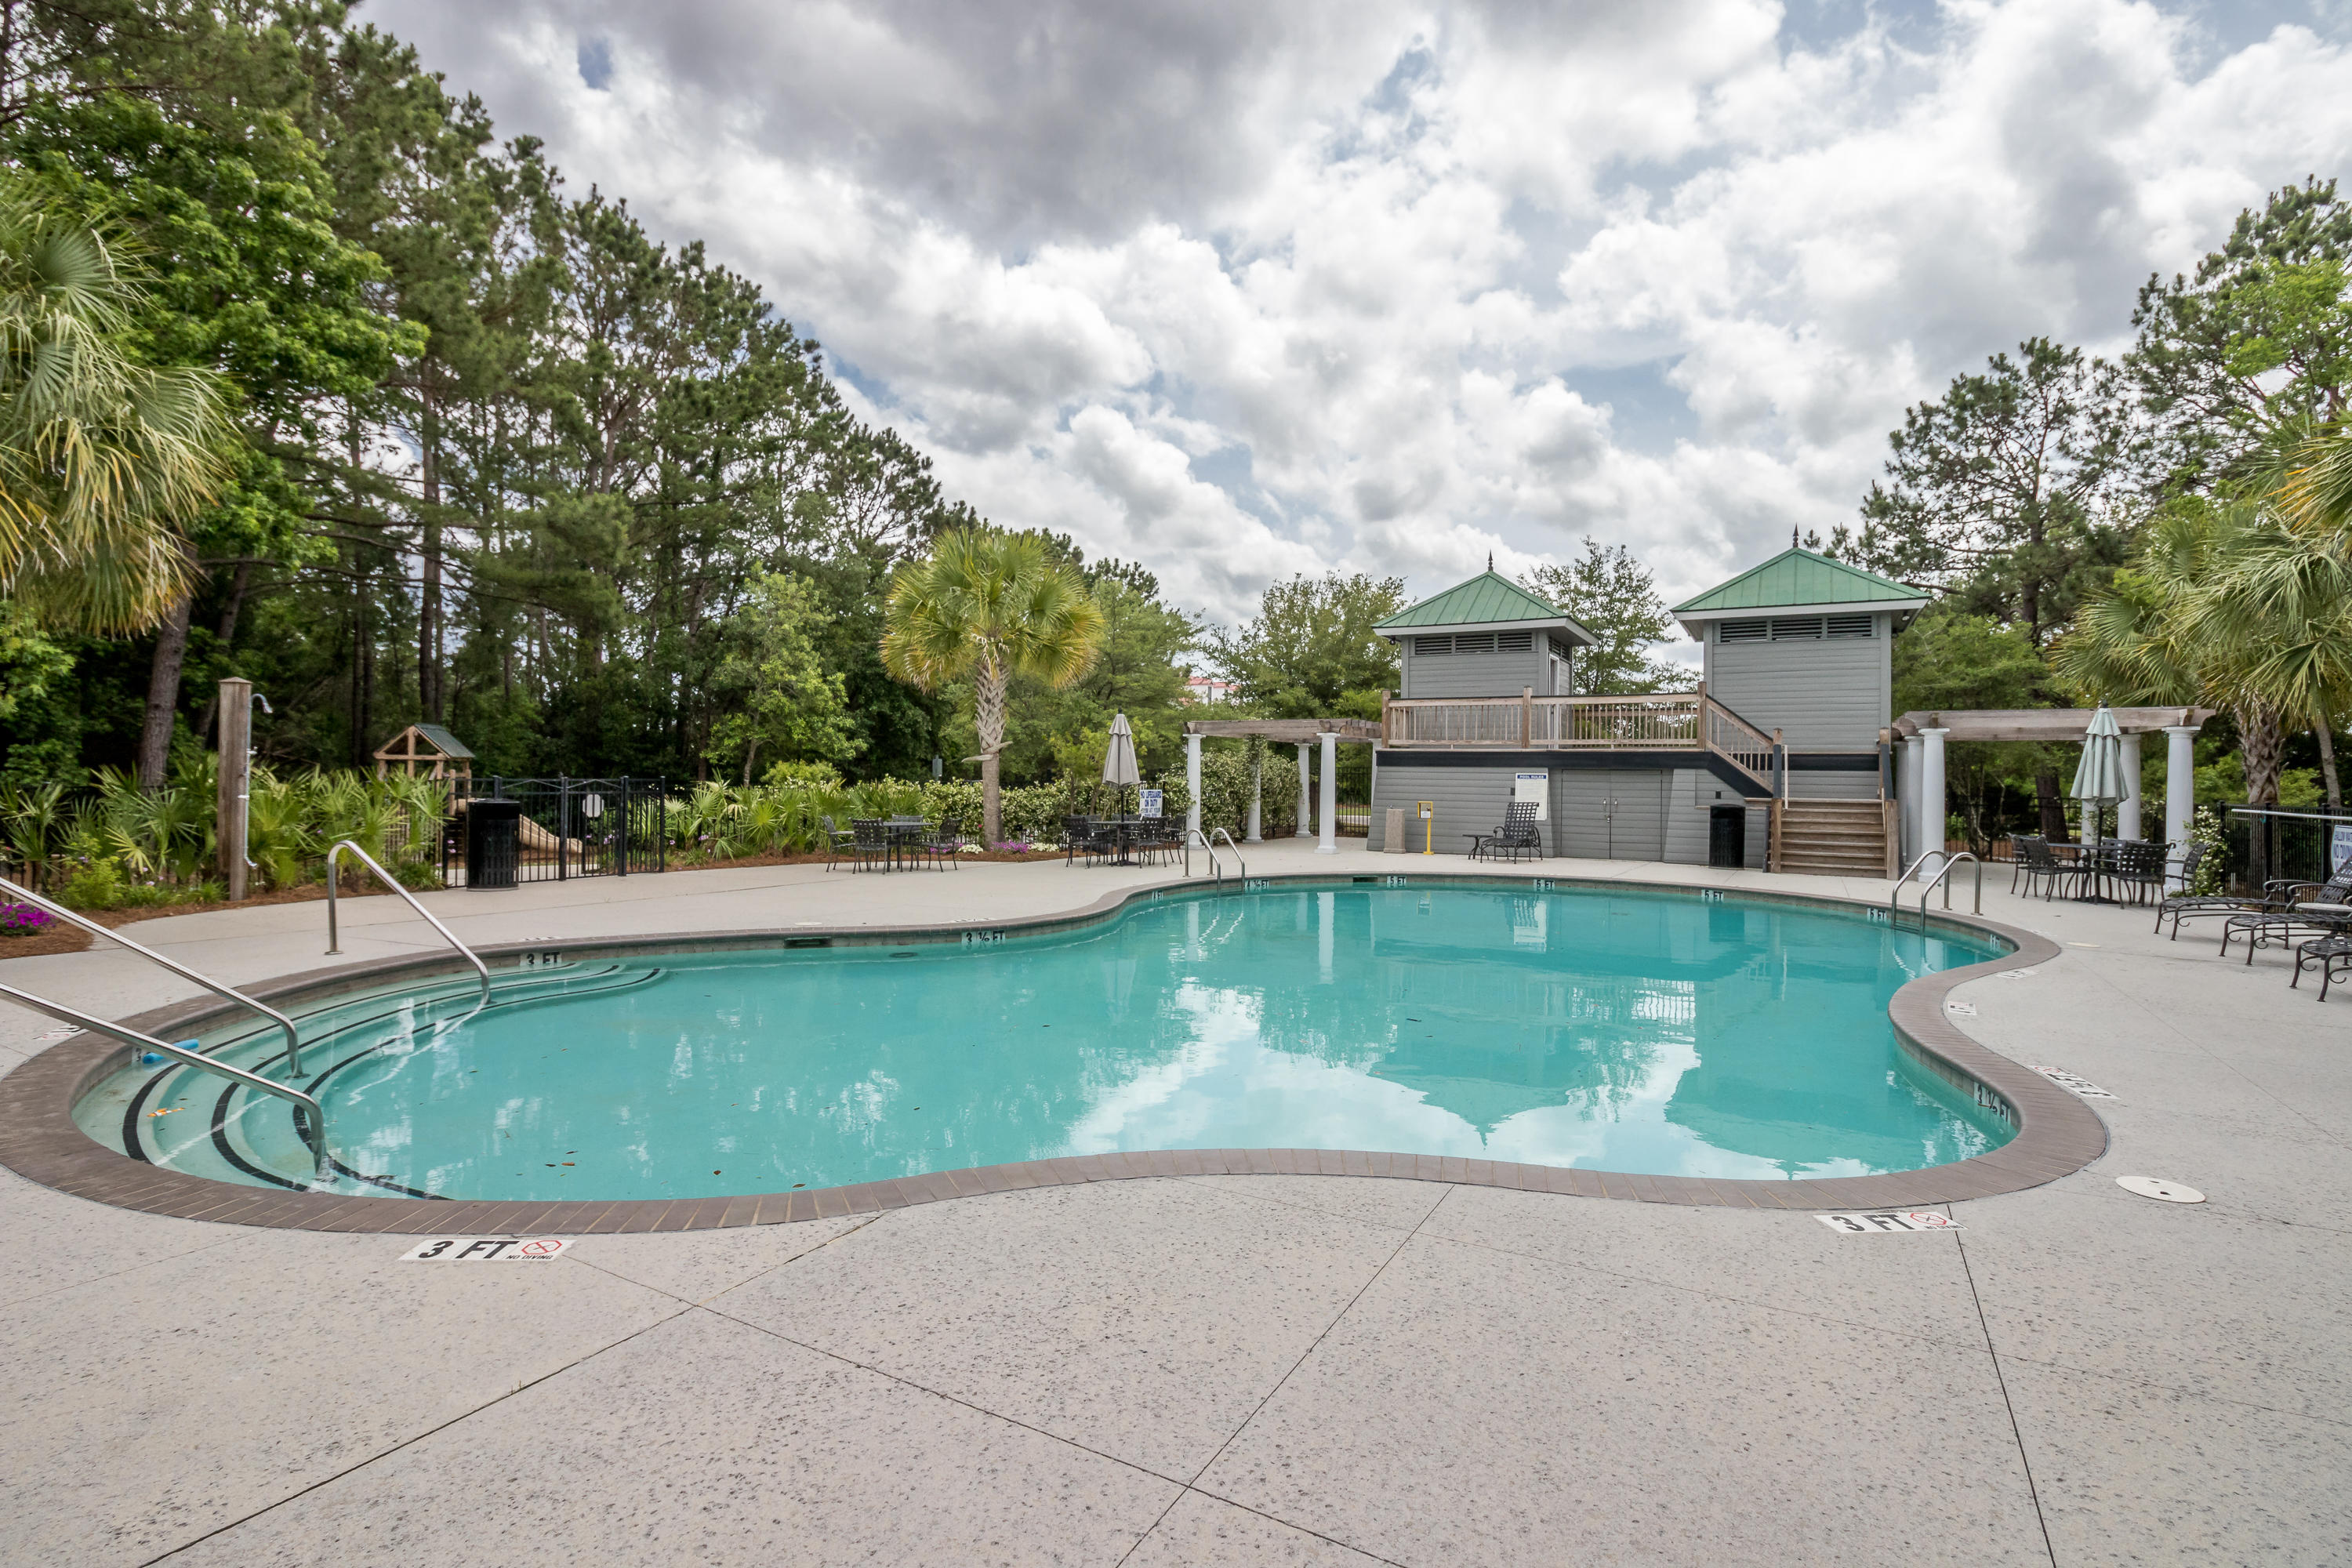 Home for sale 1430 Mcpherson , Rushland, Johns Island, SC